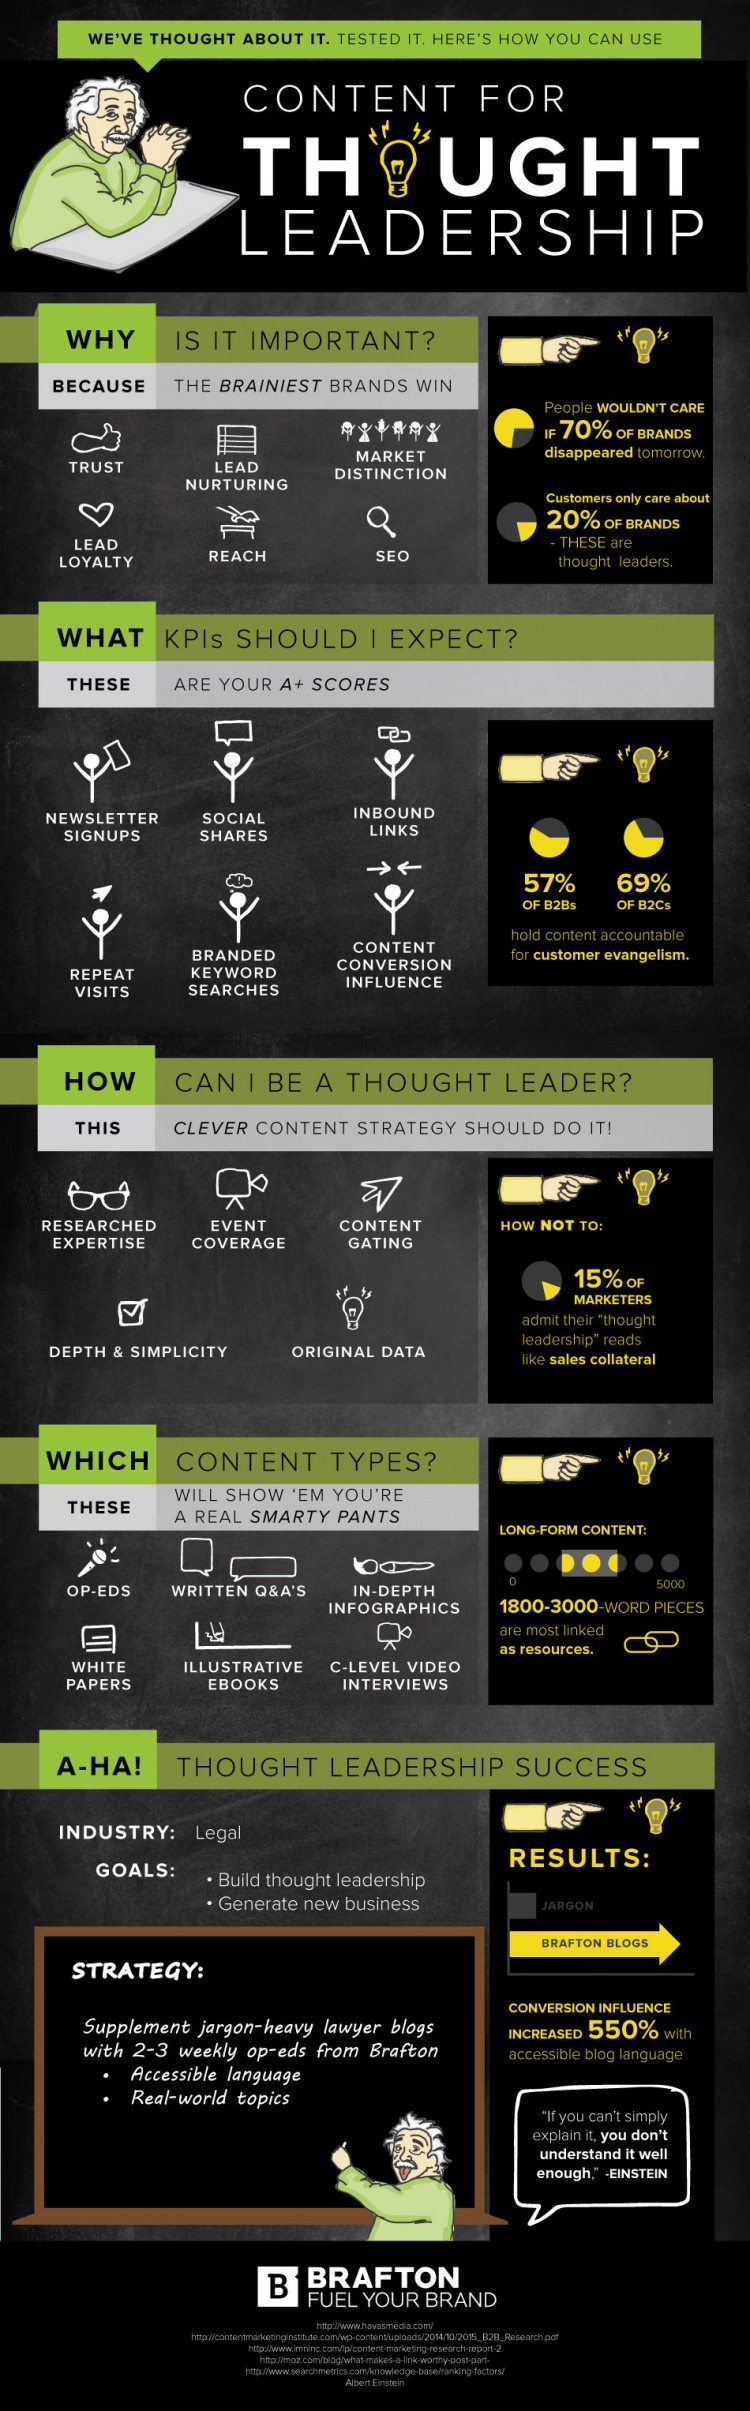 Content marketing is an opportunity to build thought leadership with the right strategy & KPIs. Here's a graphic on how to build & measure brand authority.